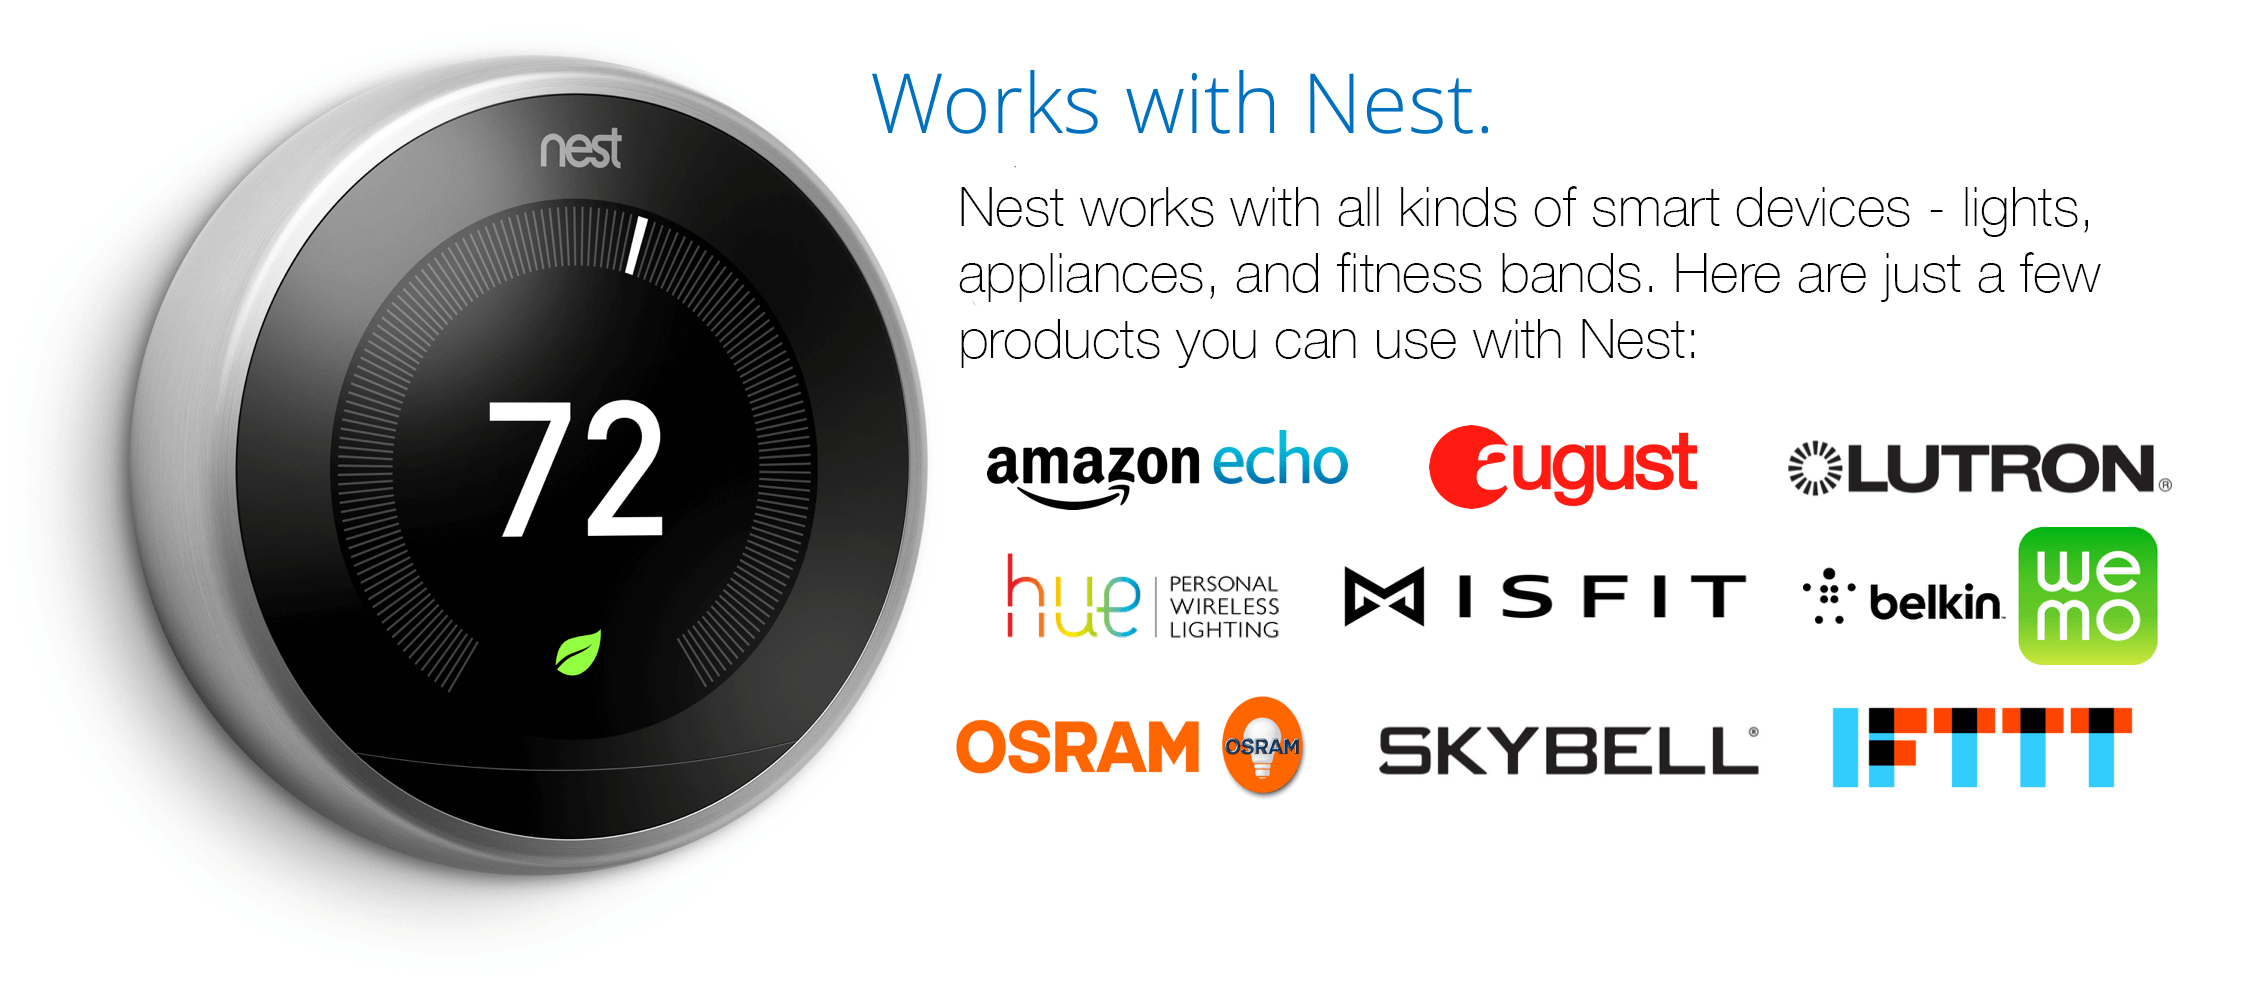 Works With Nest partners Nest learning thermostat